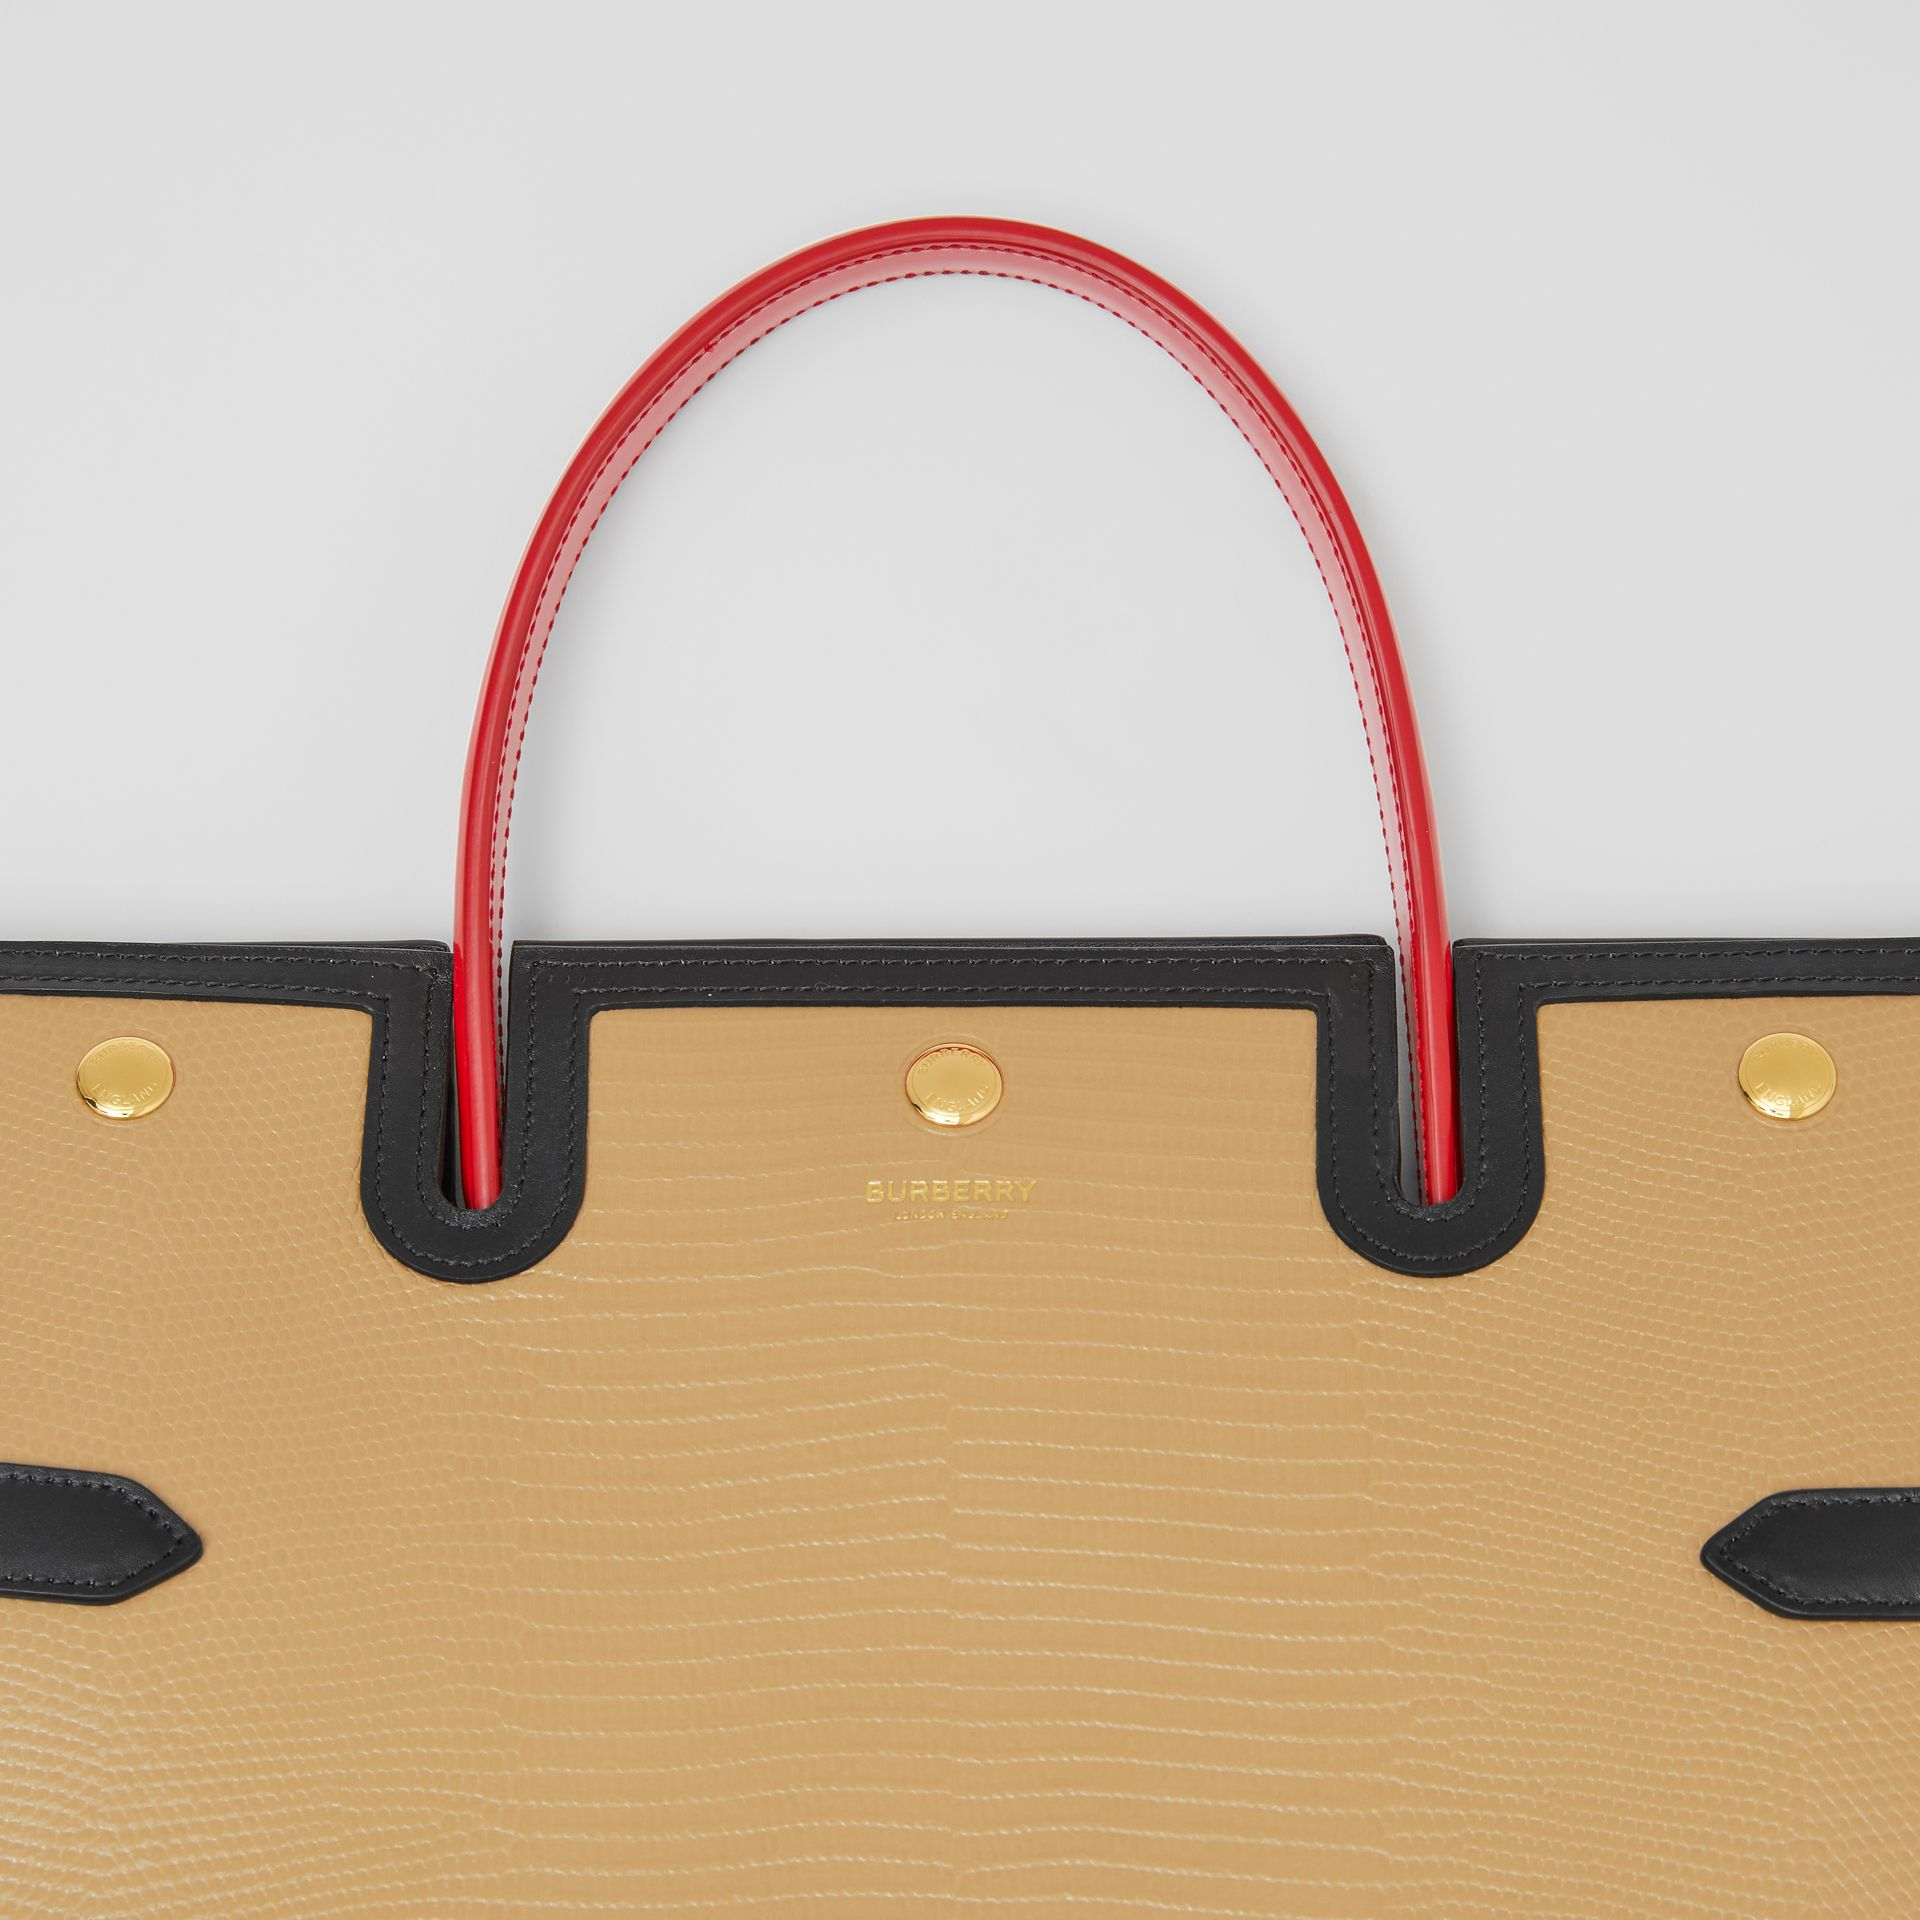 Medium Embossed Leather Title Bag in Honey - Women | Burberry Singapore - gallery image 8